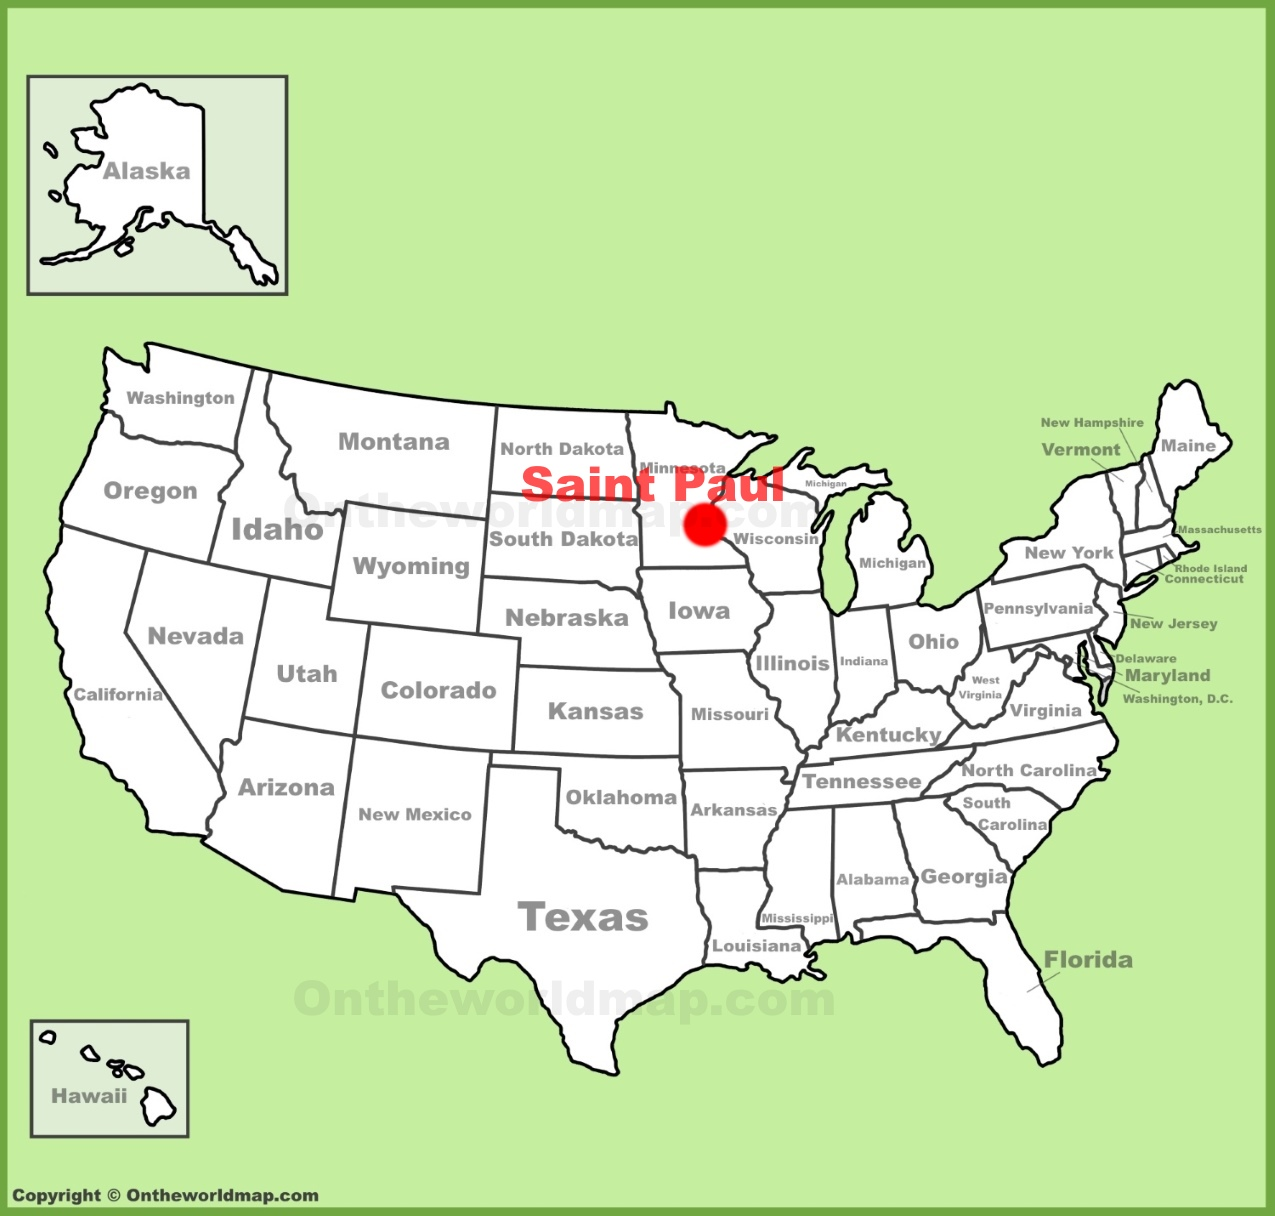 Saint Paul location on the US Map